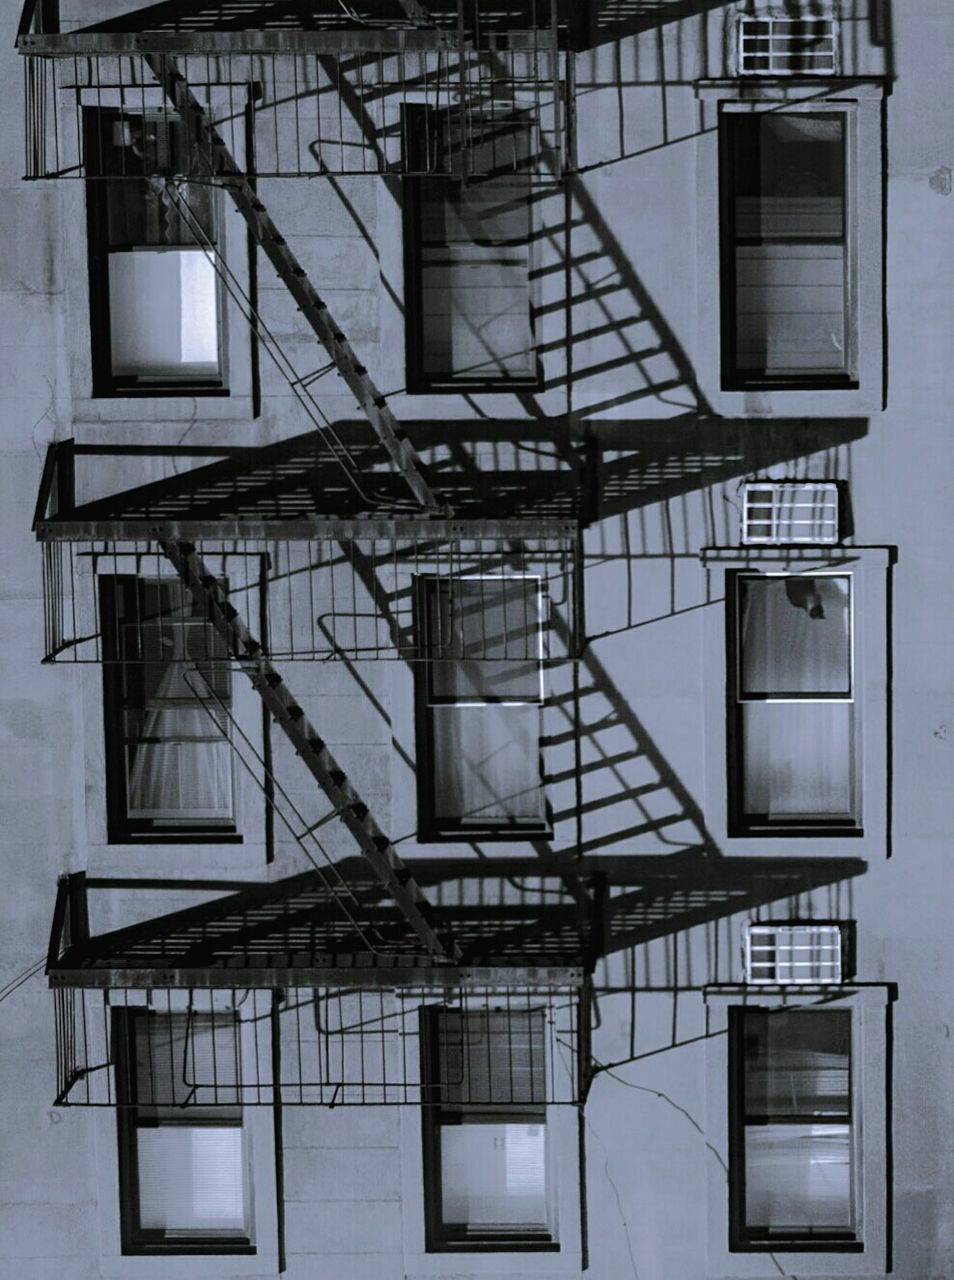 architecture, built structure, building exterior, fire escape, staircase, steps and staircases, no people, accidents and disasters, window, low angle view, building, emergency exit, safety, residential district, outdoors, railing, urgency, day, wall, industry, apartment